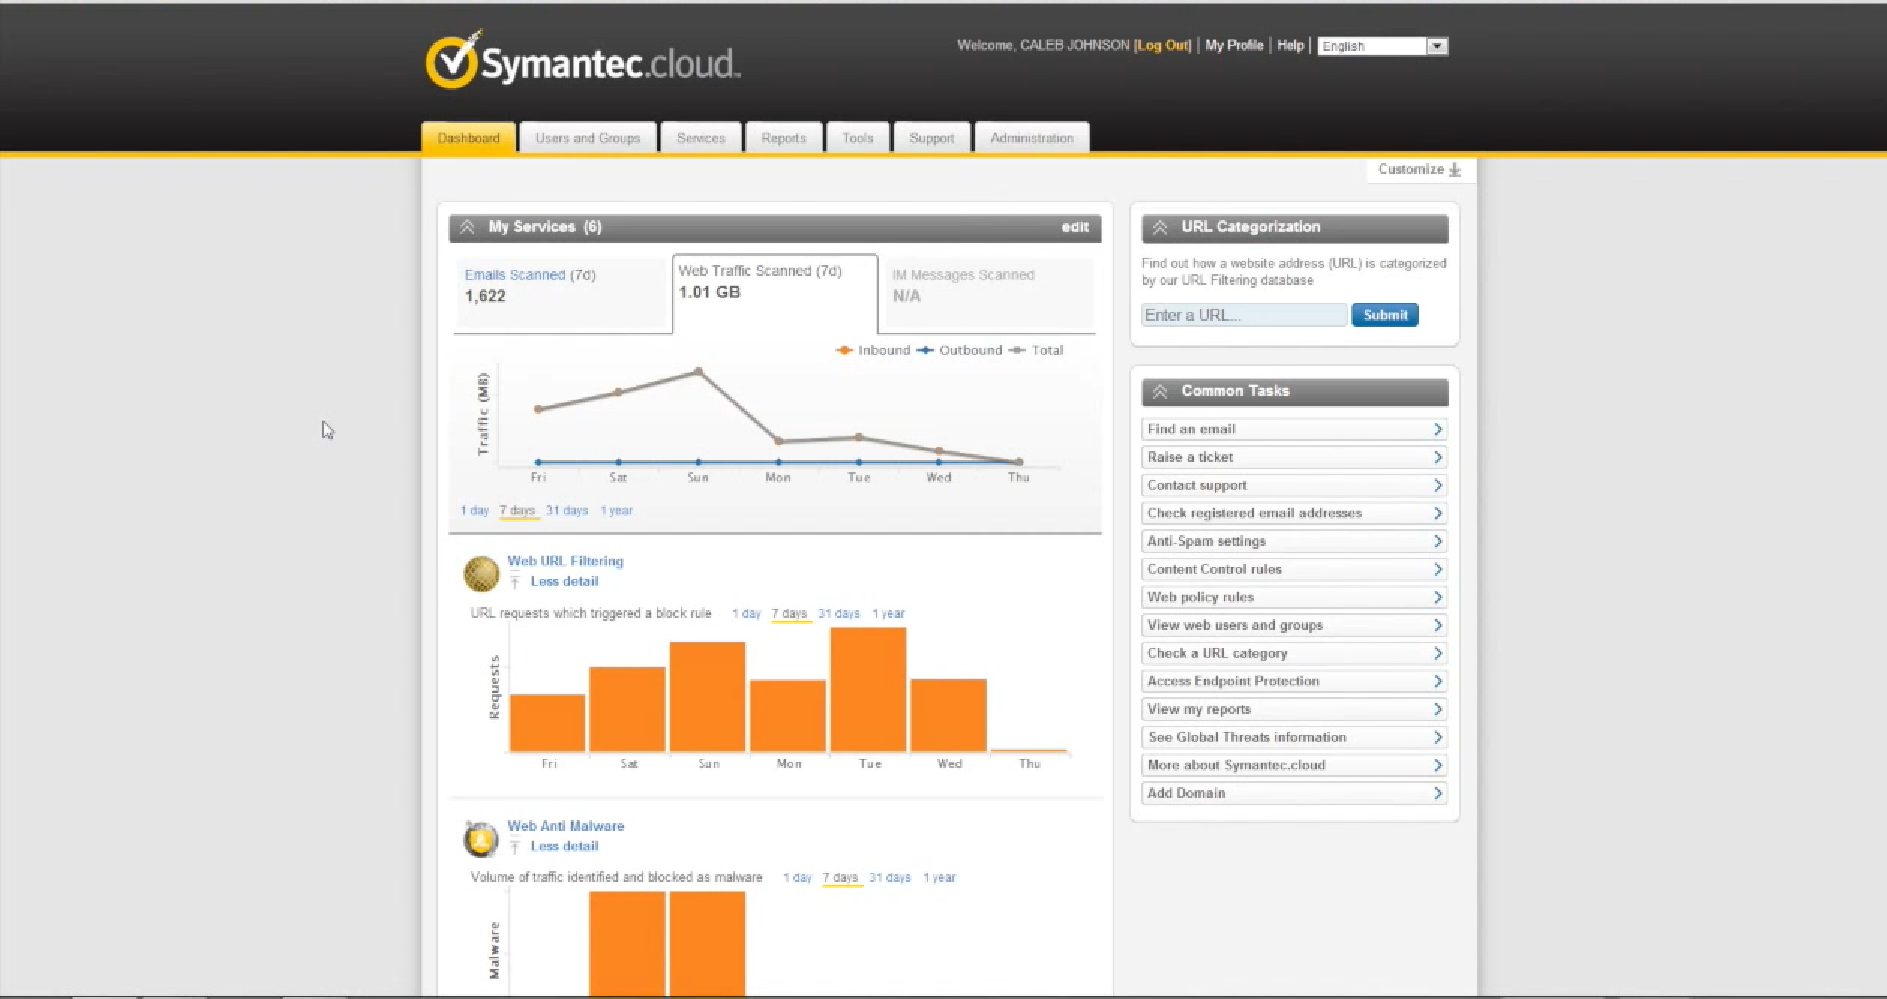 Symantec Cloud dashboard